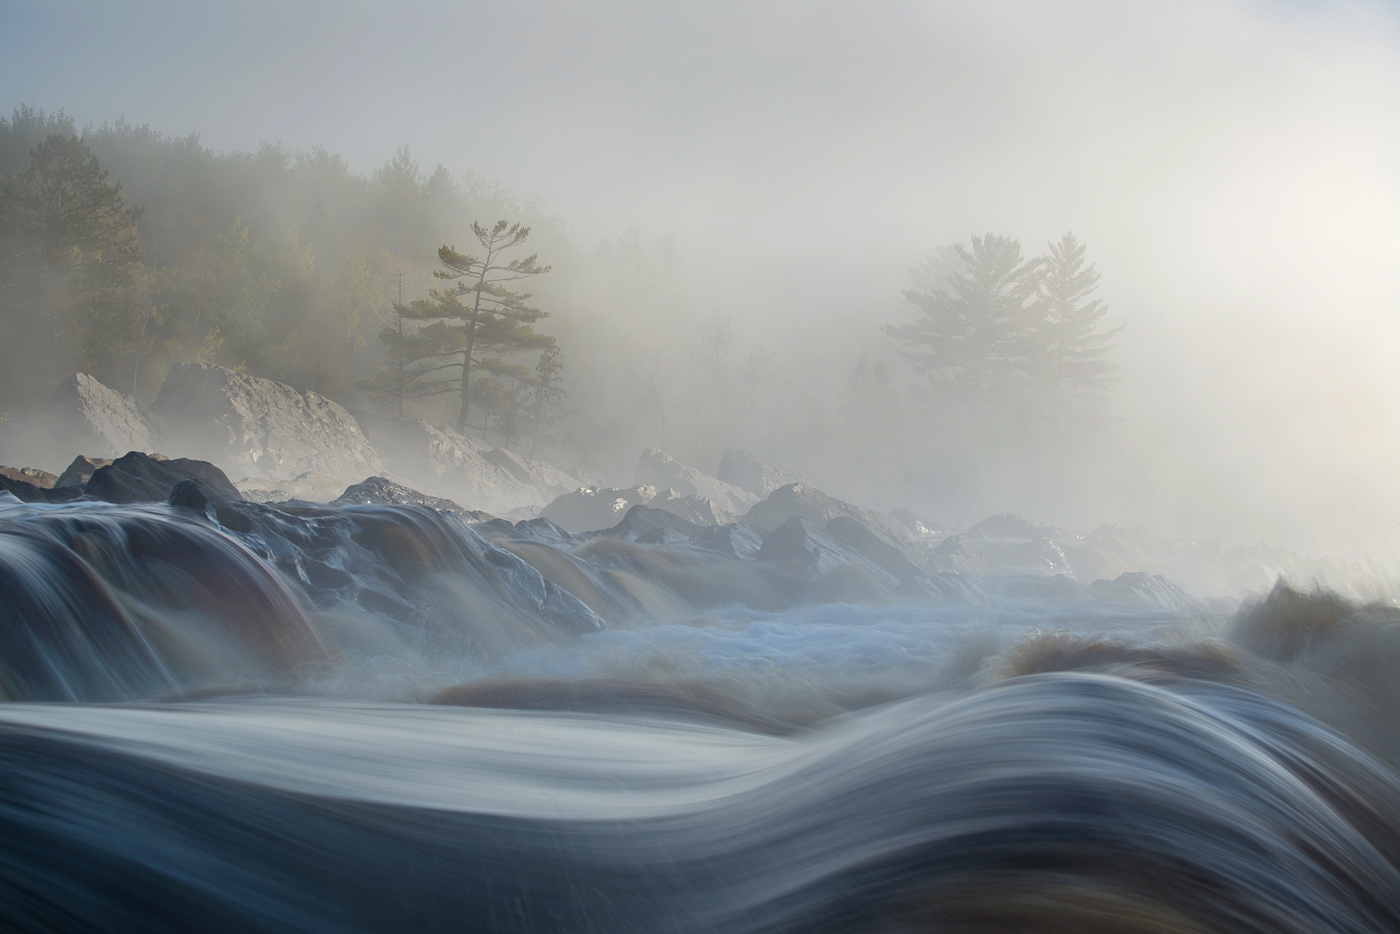 River,St. Louis River,Sunrise,fog,j. cooke,minnesota,morning,motion,state park